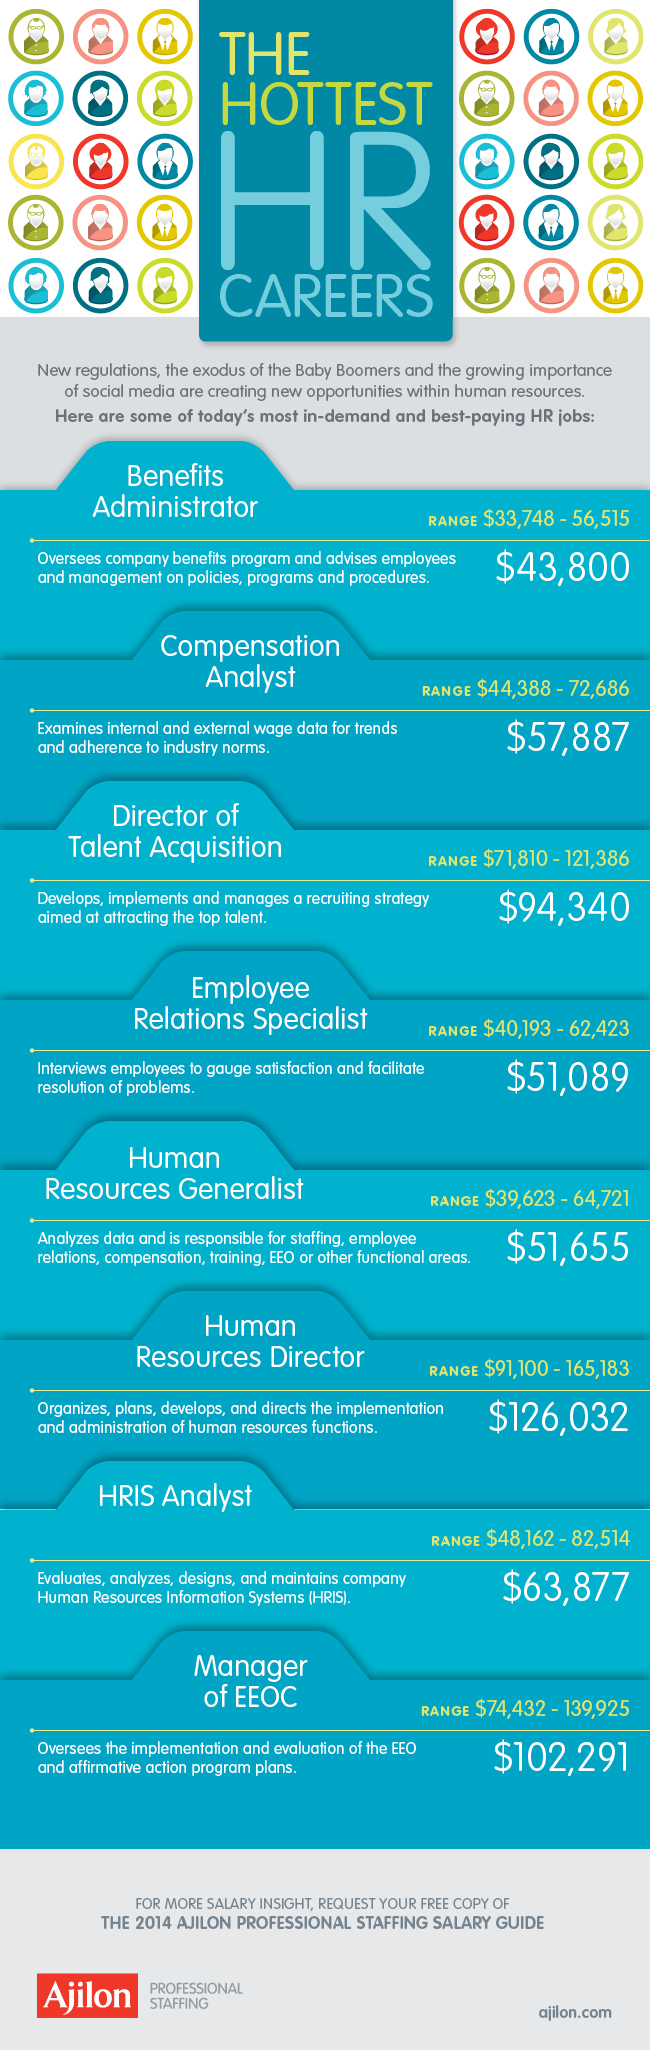 Top 8 HR Careers That Are Exploding